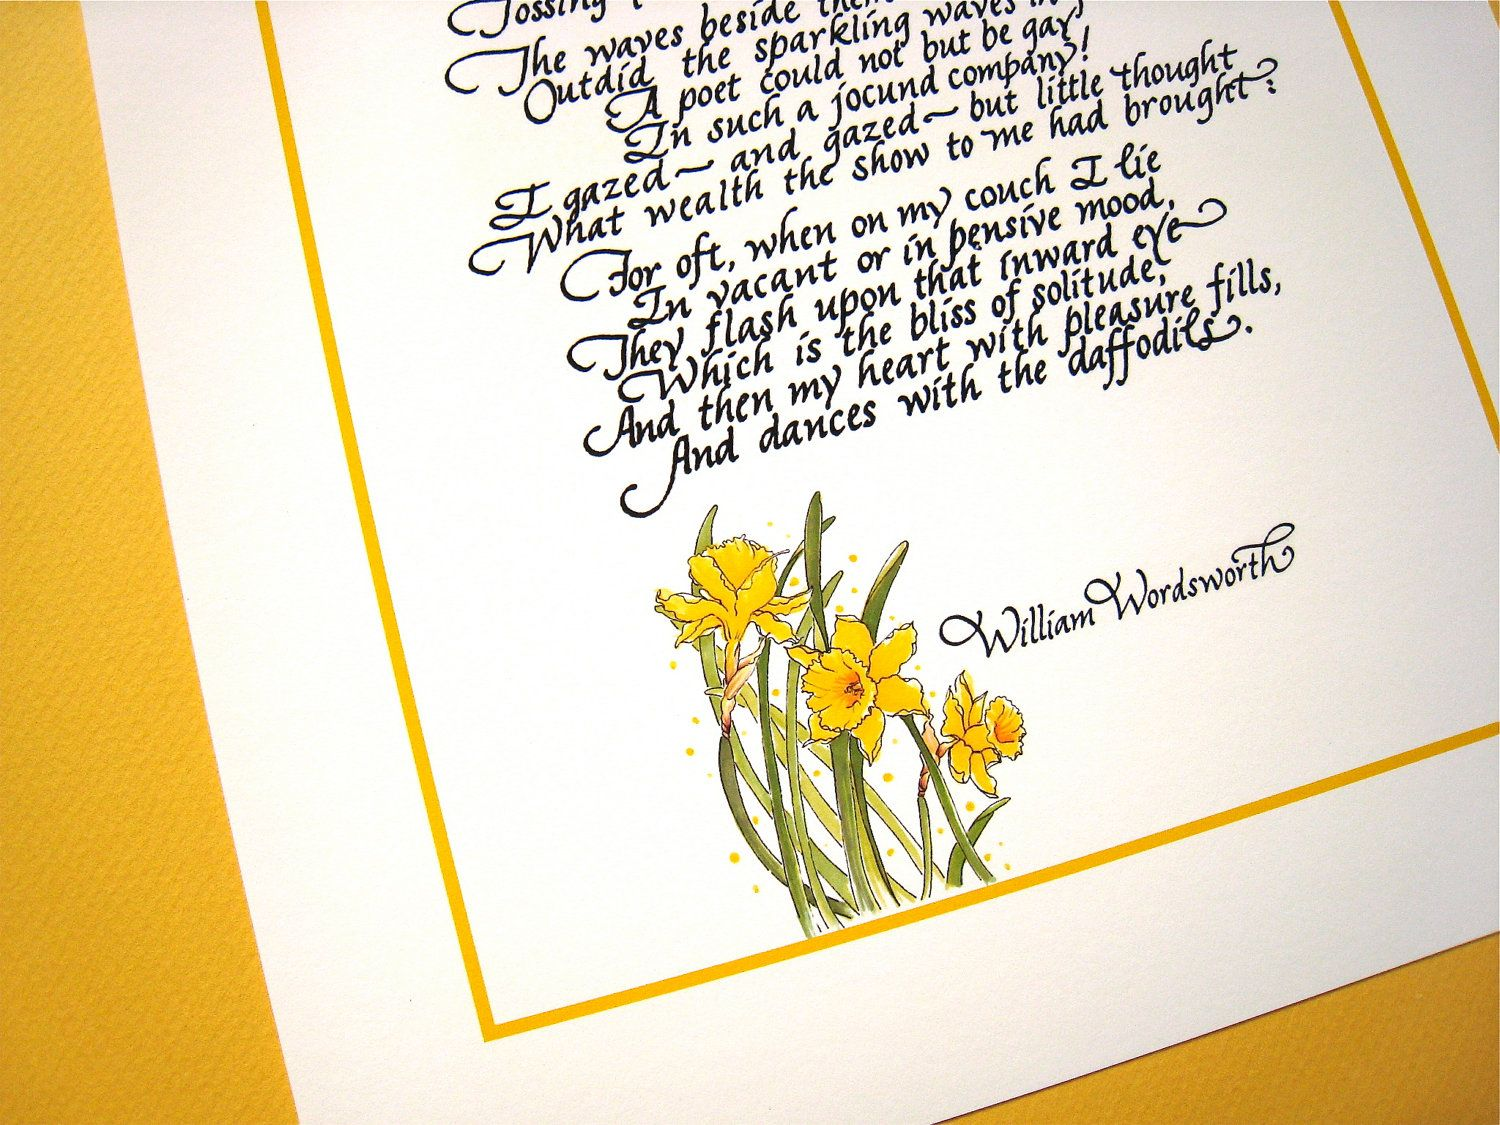 Daffodil Calligraphy Print Wordsworth Poem English Etsy Romantic Writing Poems What I The Meaning Of Wandered Lonely A Cloud By William